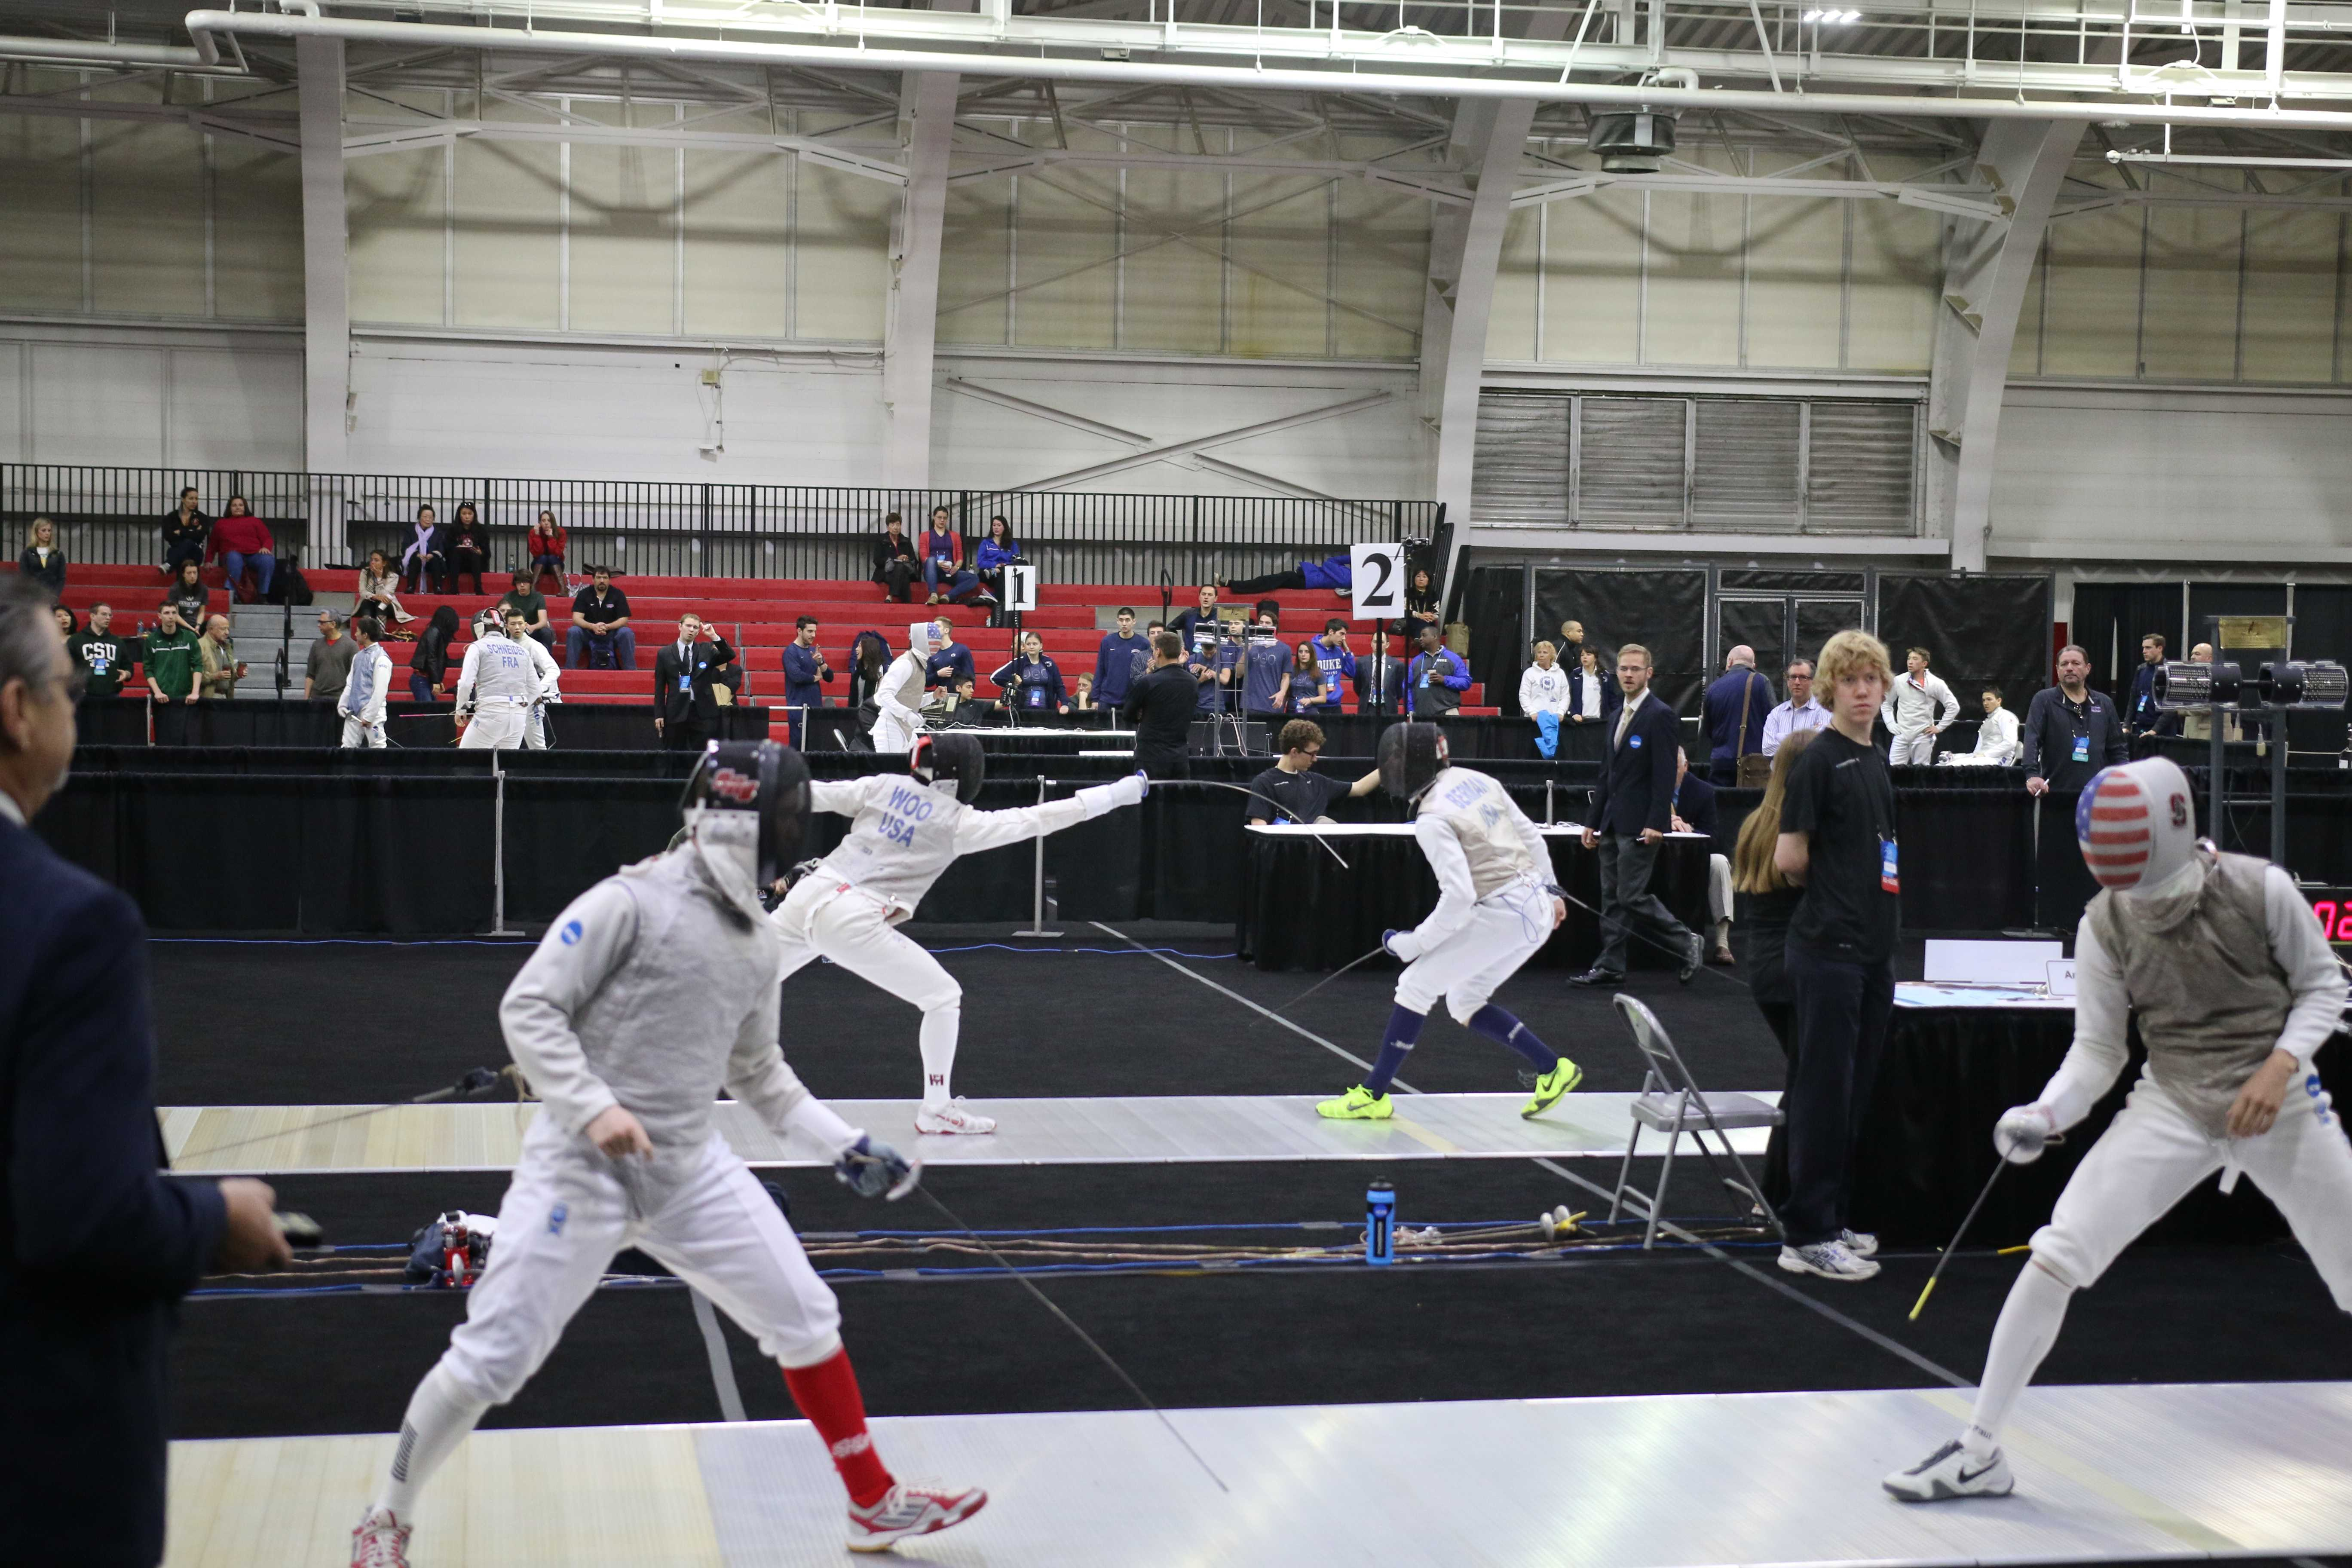 Noah Berman (right) of Brandeis fenced Michael Woo (left) of Harvard on the far strip at the 2014 NCAA Championships. Photo by Steven Berman.